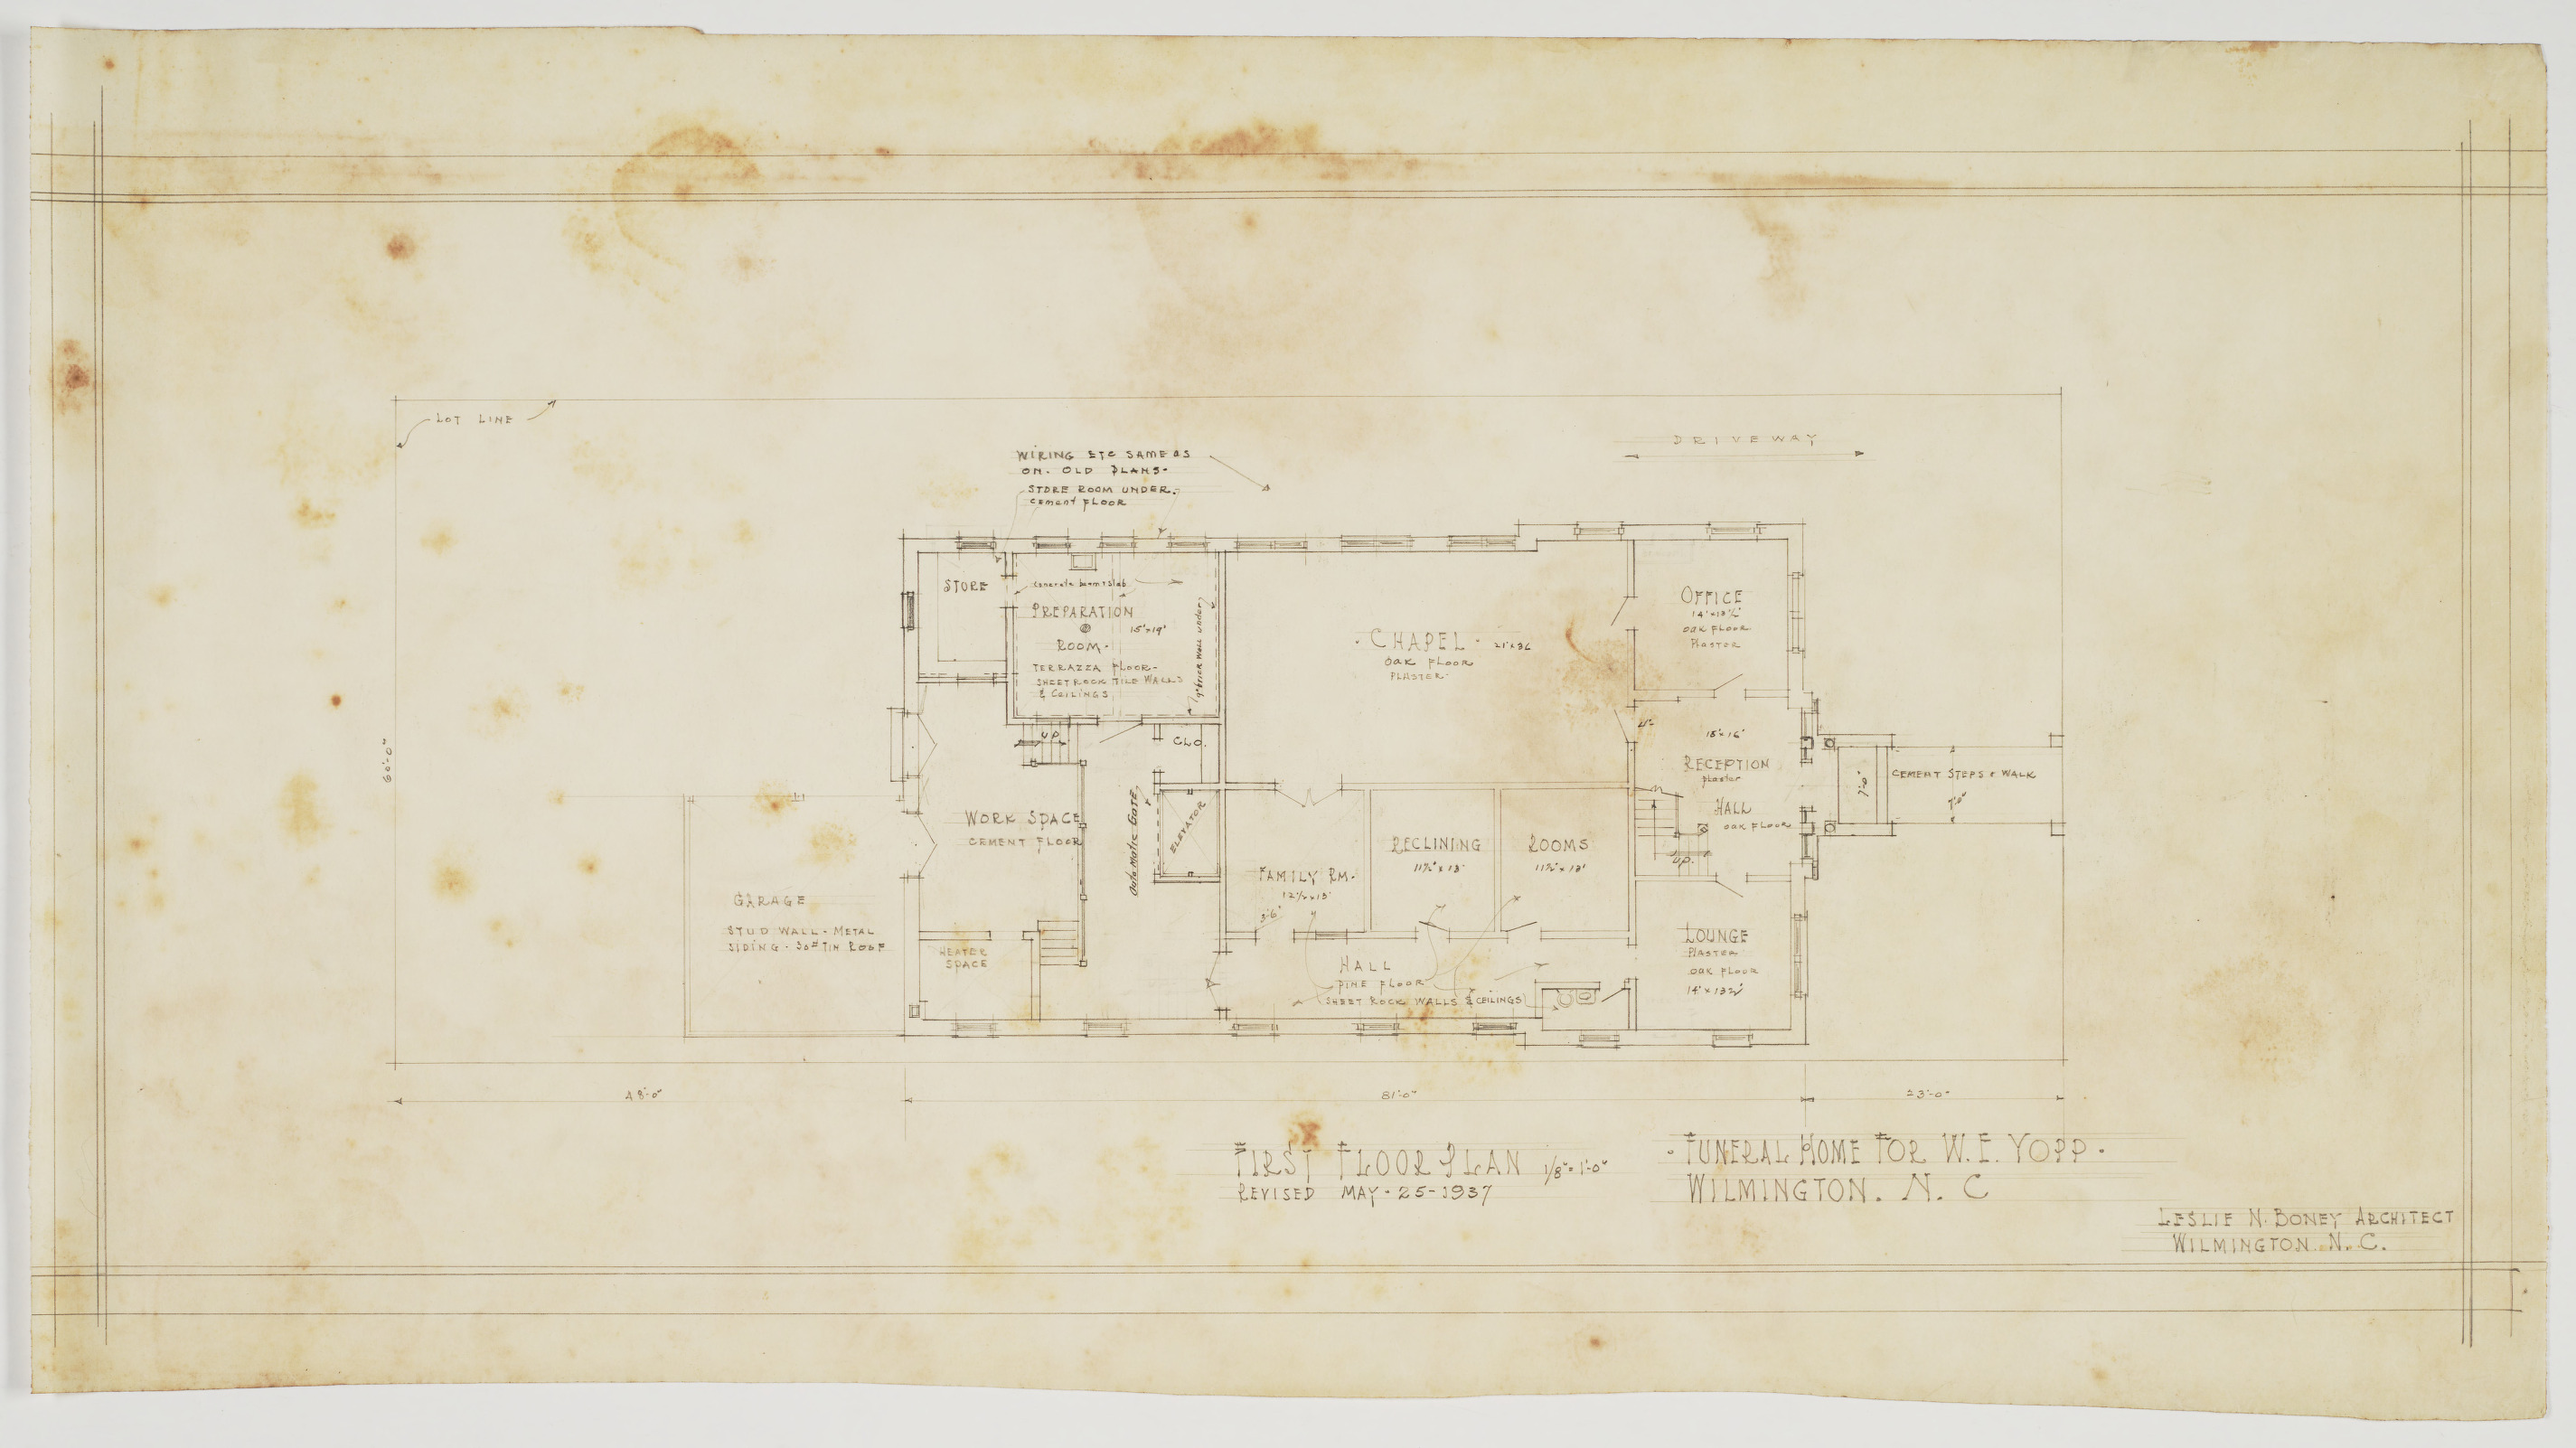 First Floor Plan (W. E. Yopps Funeral Home (Wilmington, N